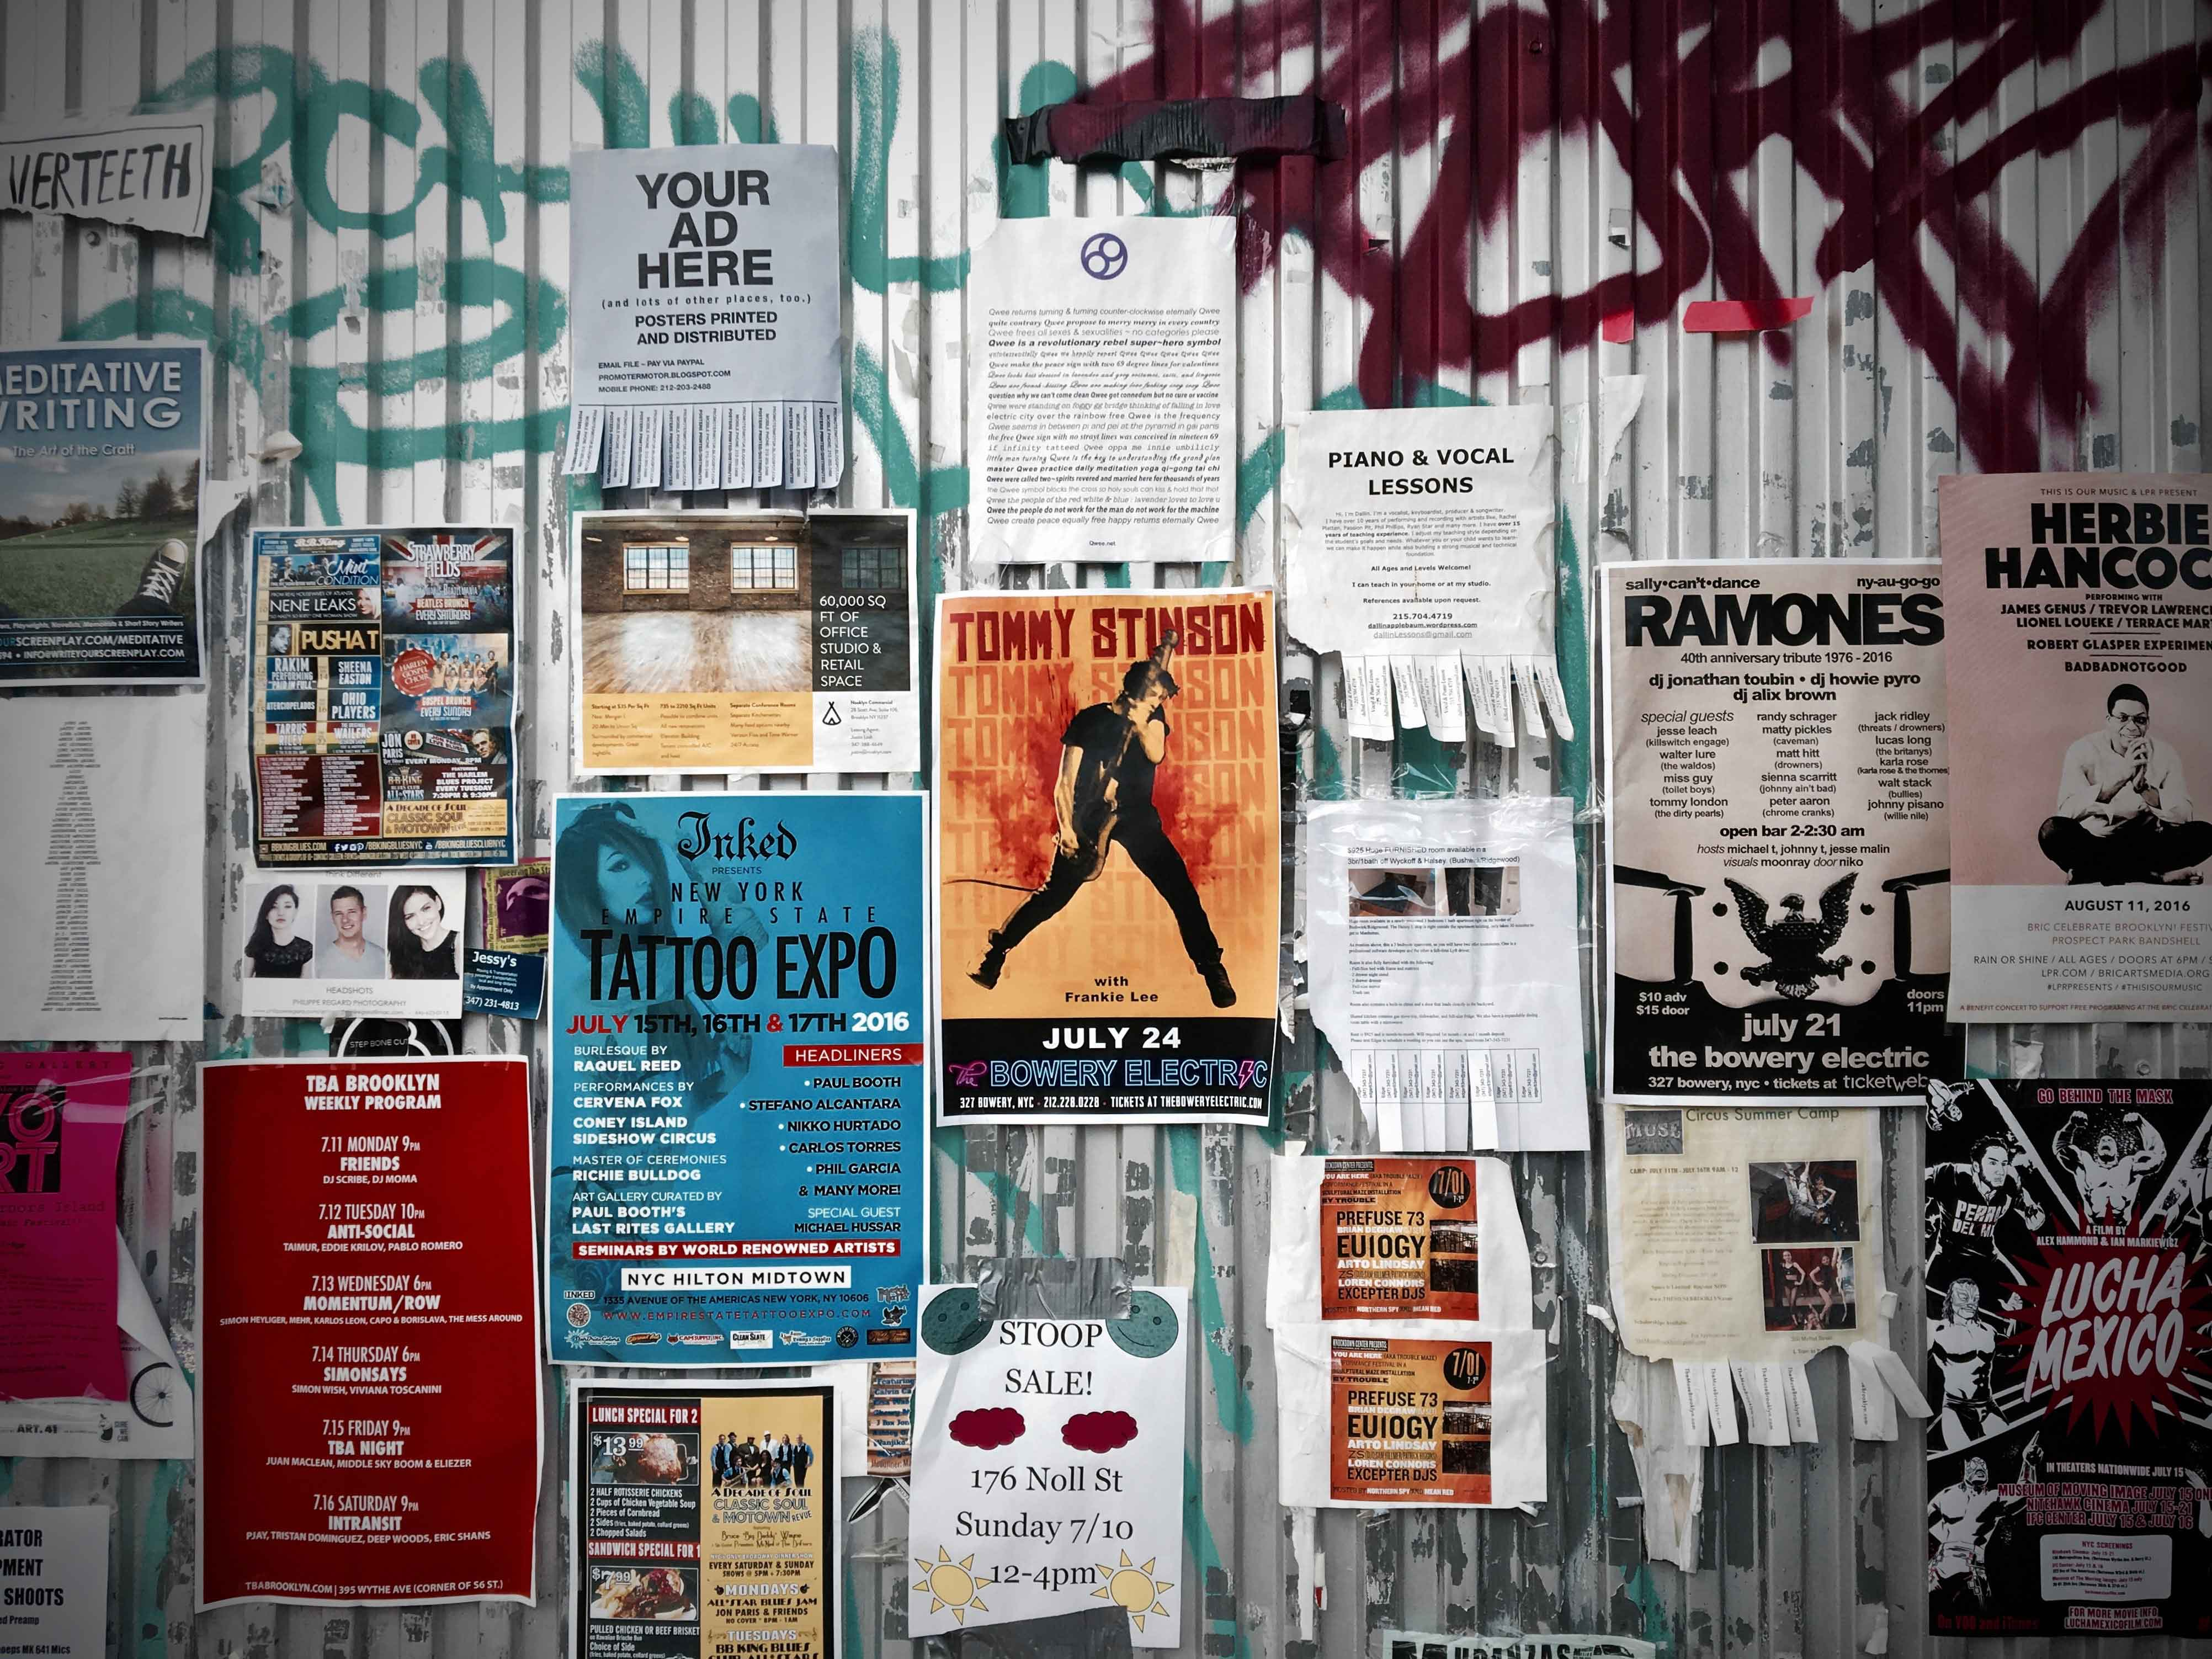 How Effective are Posters in Advertising